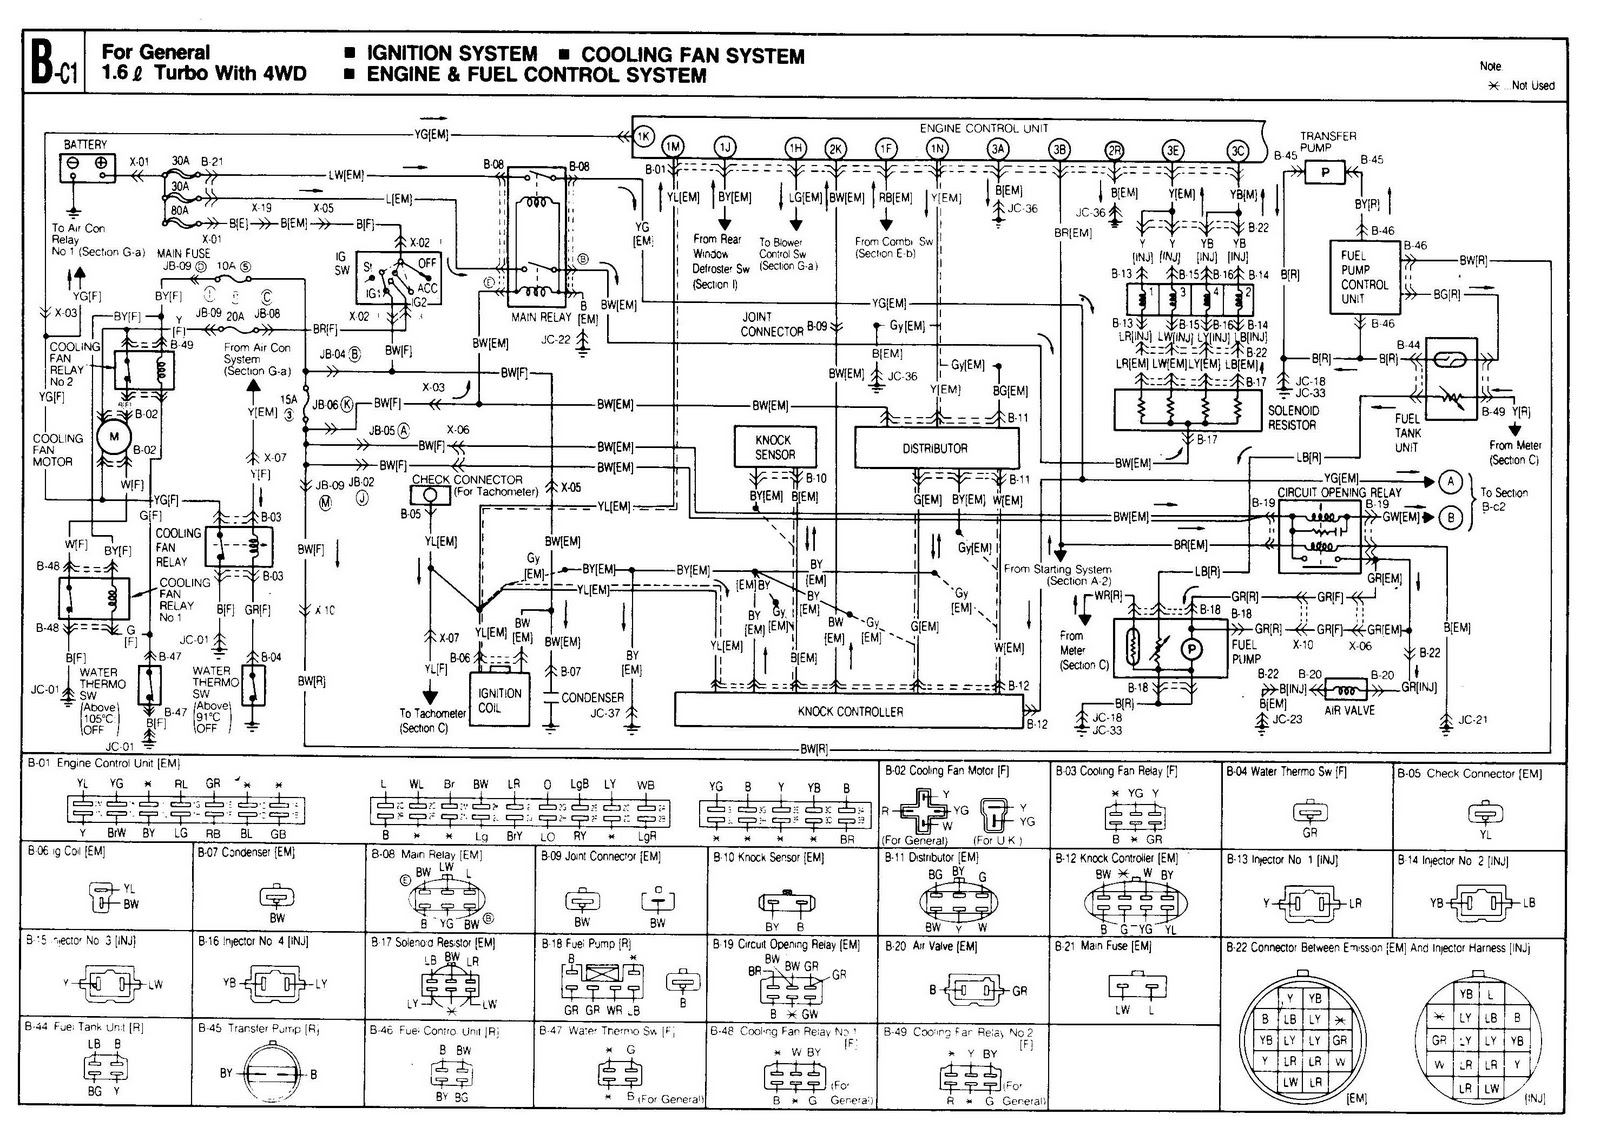 mazda 323 wiring diagram vw polo radio 1991 miata get free image about